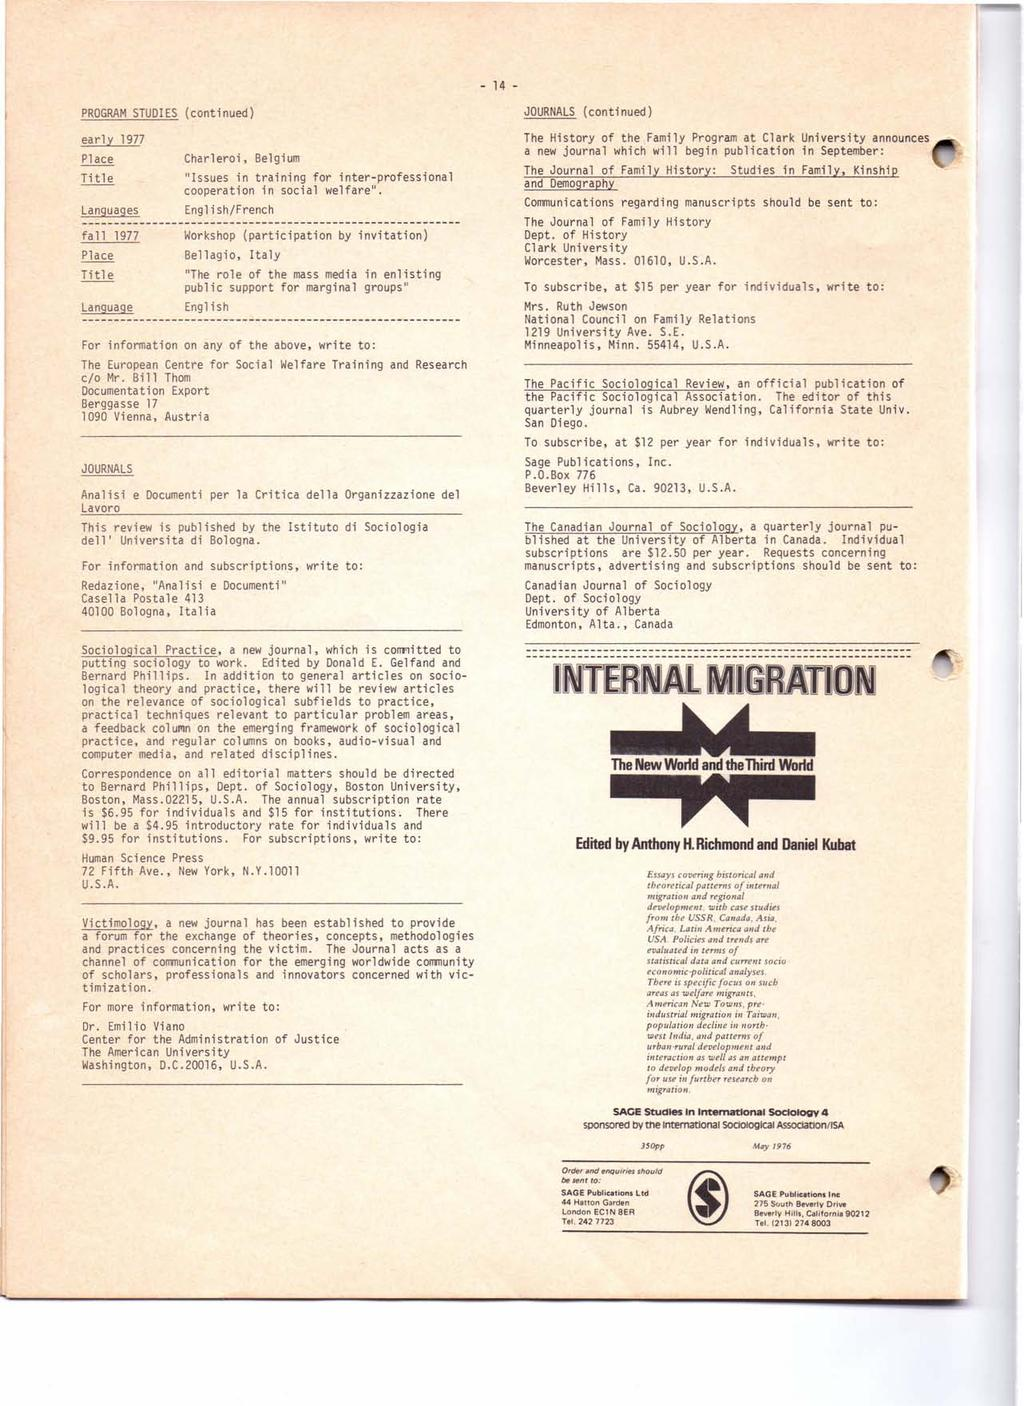 "- 14 - PROGRAM STUOIES (continued) early 1977 Place Title Languages fall 1977 Place Title Language Charleroi, Belgium ""Issues in training for inter-professional cooperation in social welfare""."